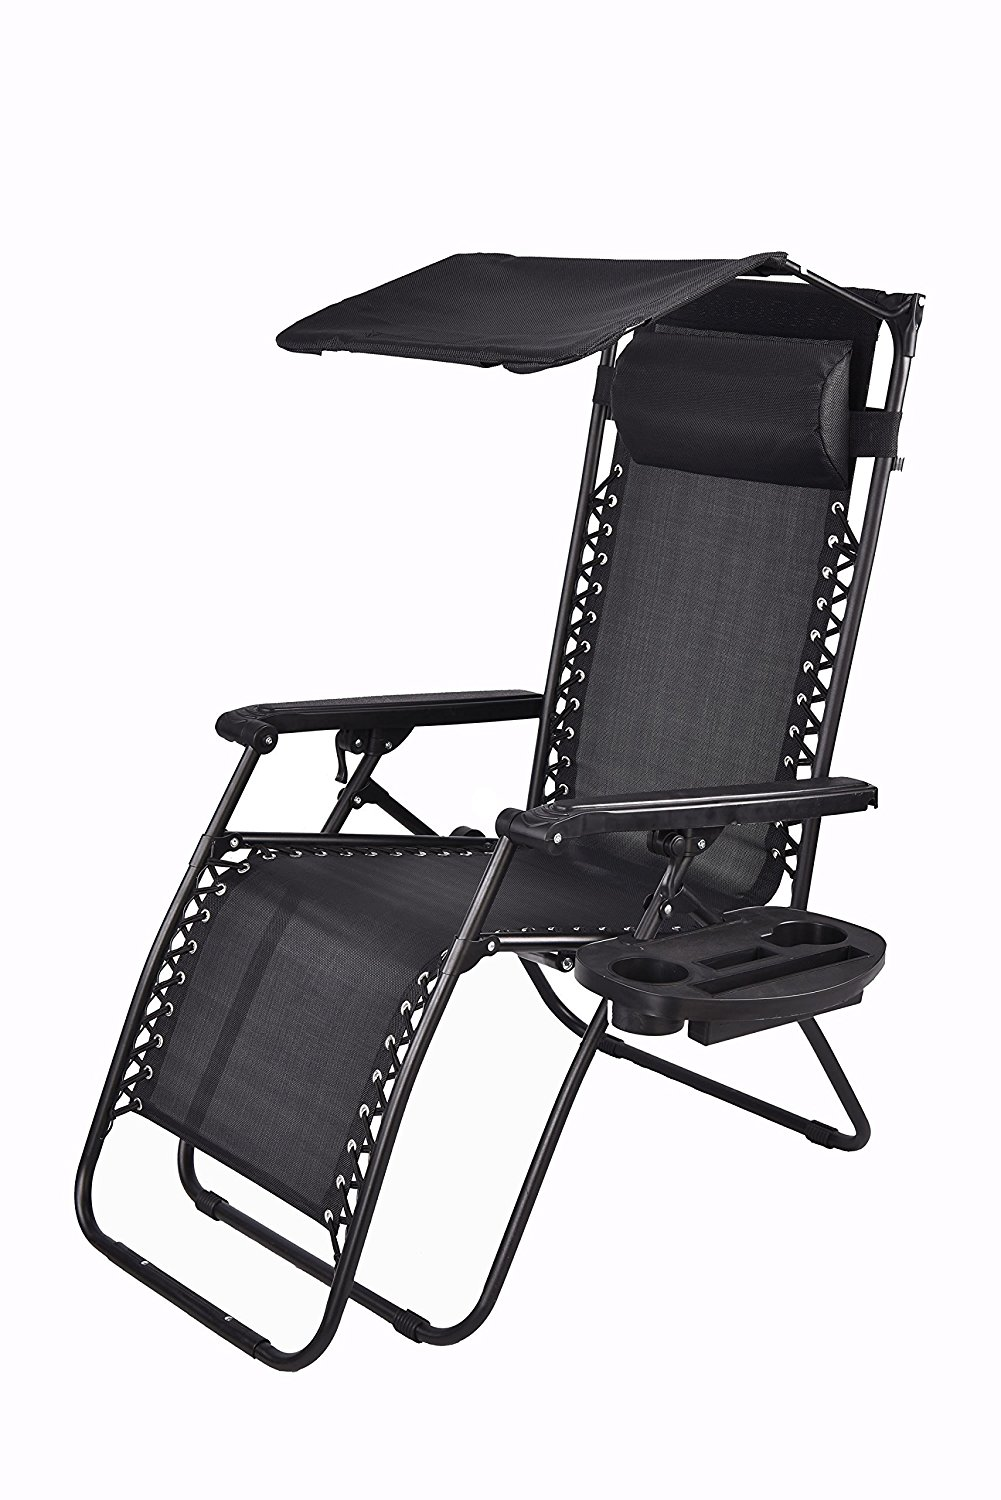 Zero gravity Chair with Canopy Sunshade Utility Tray Cup ...